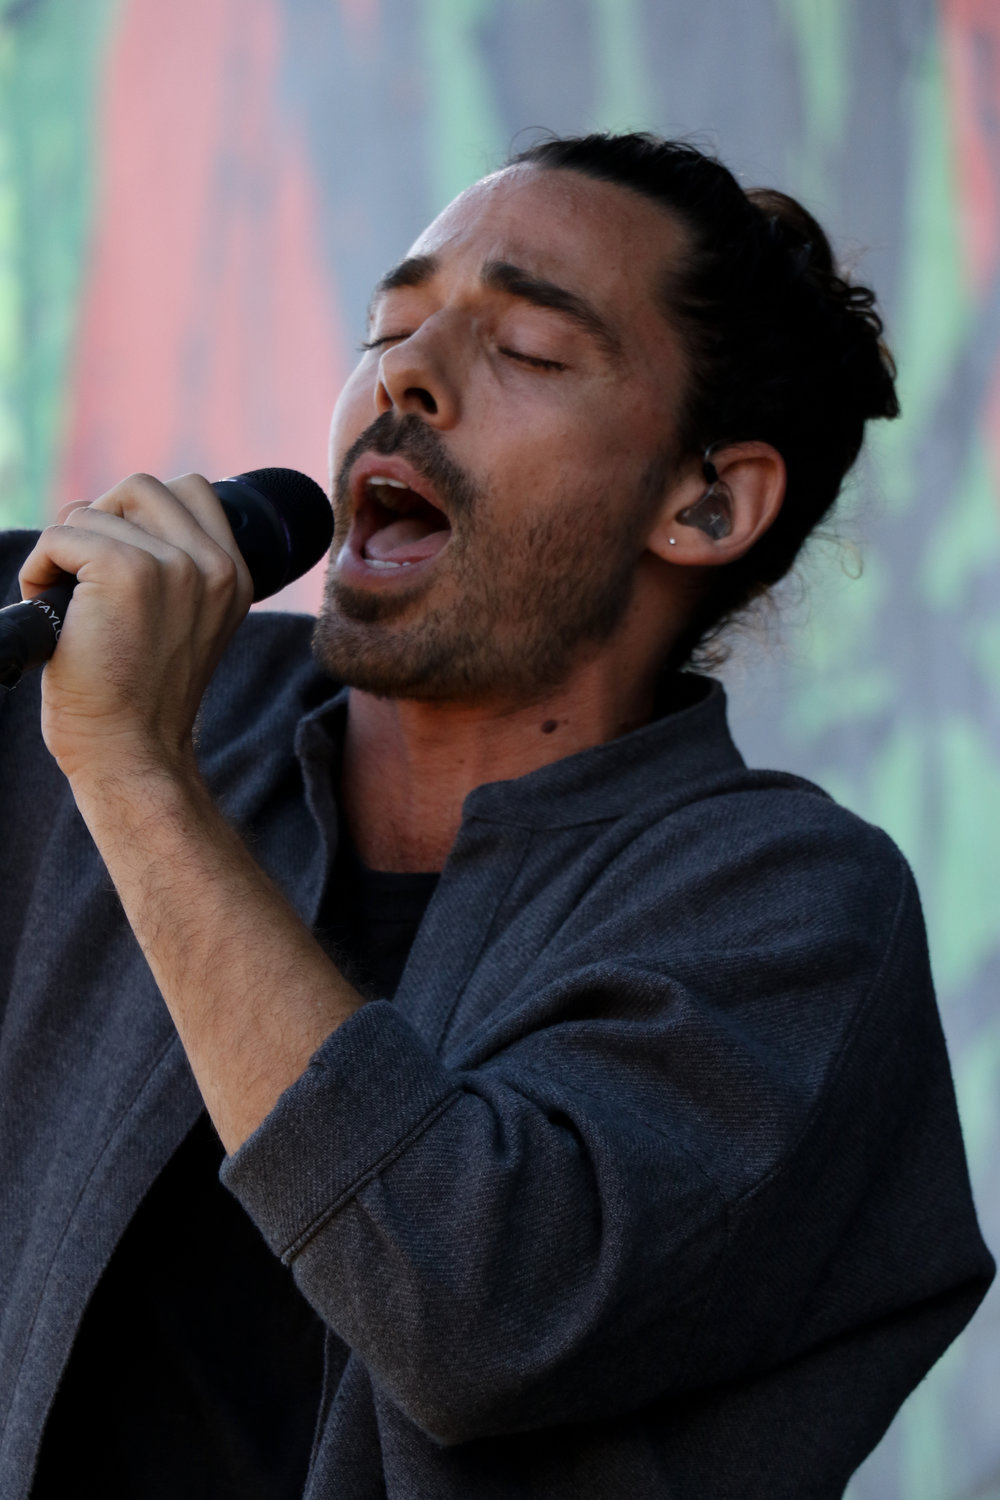 Taylor Rice, frontman of Local Natives, sings for Day 3 festival-goers.